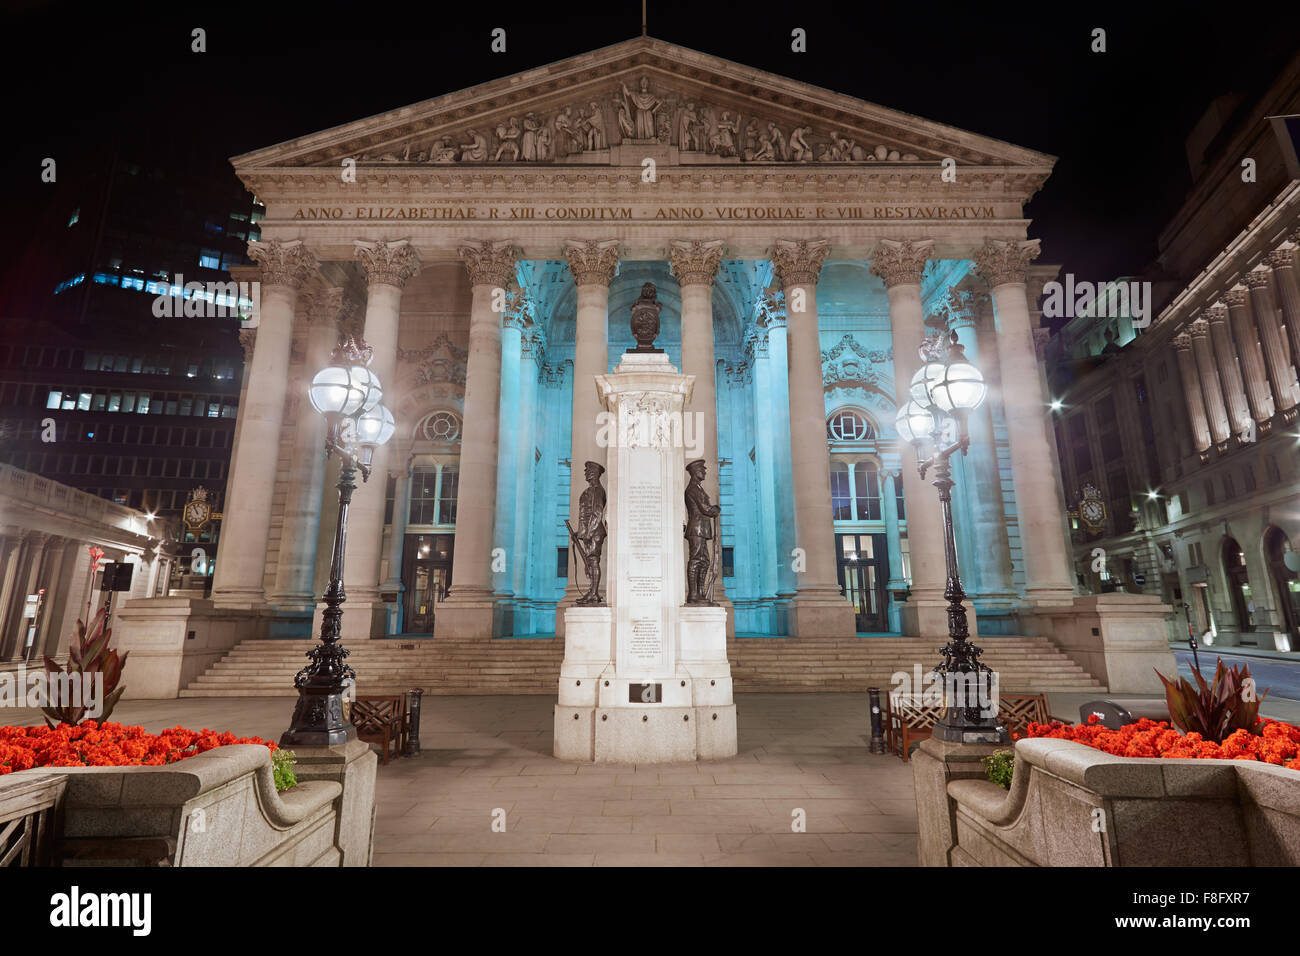 London Royal Exchange, luxury shopping center and square at night - Stock Image